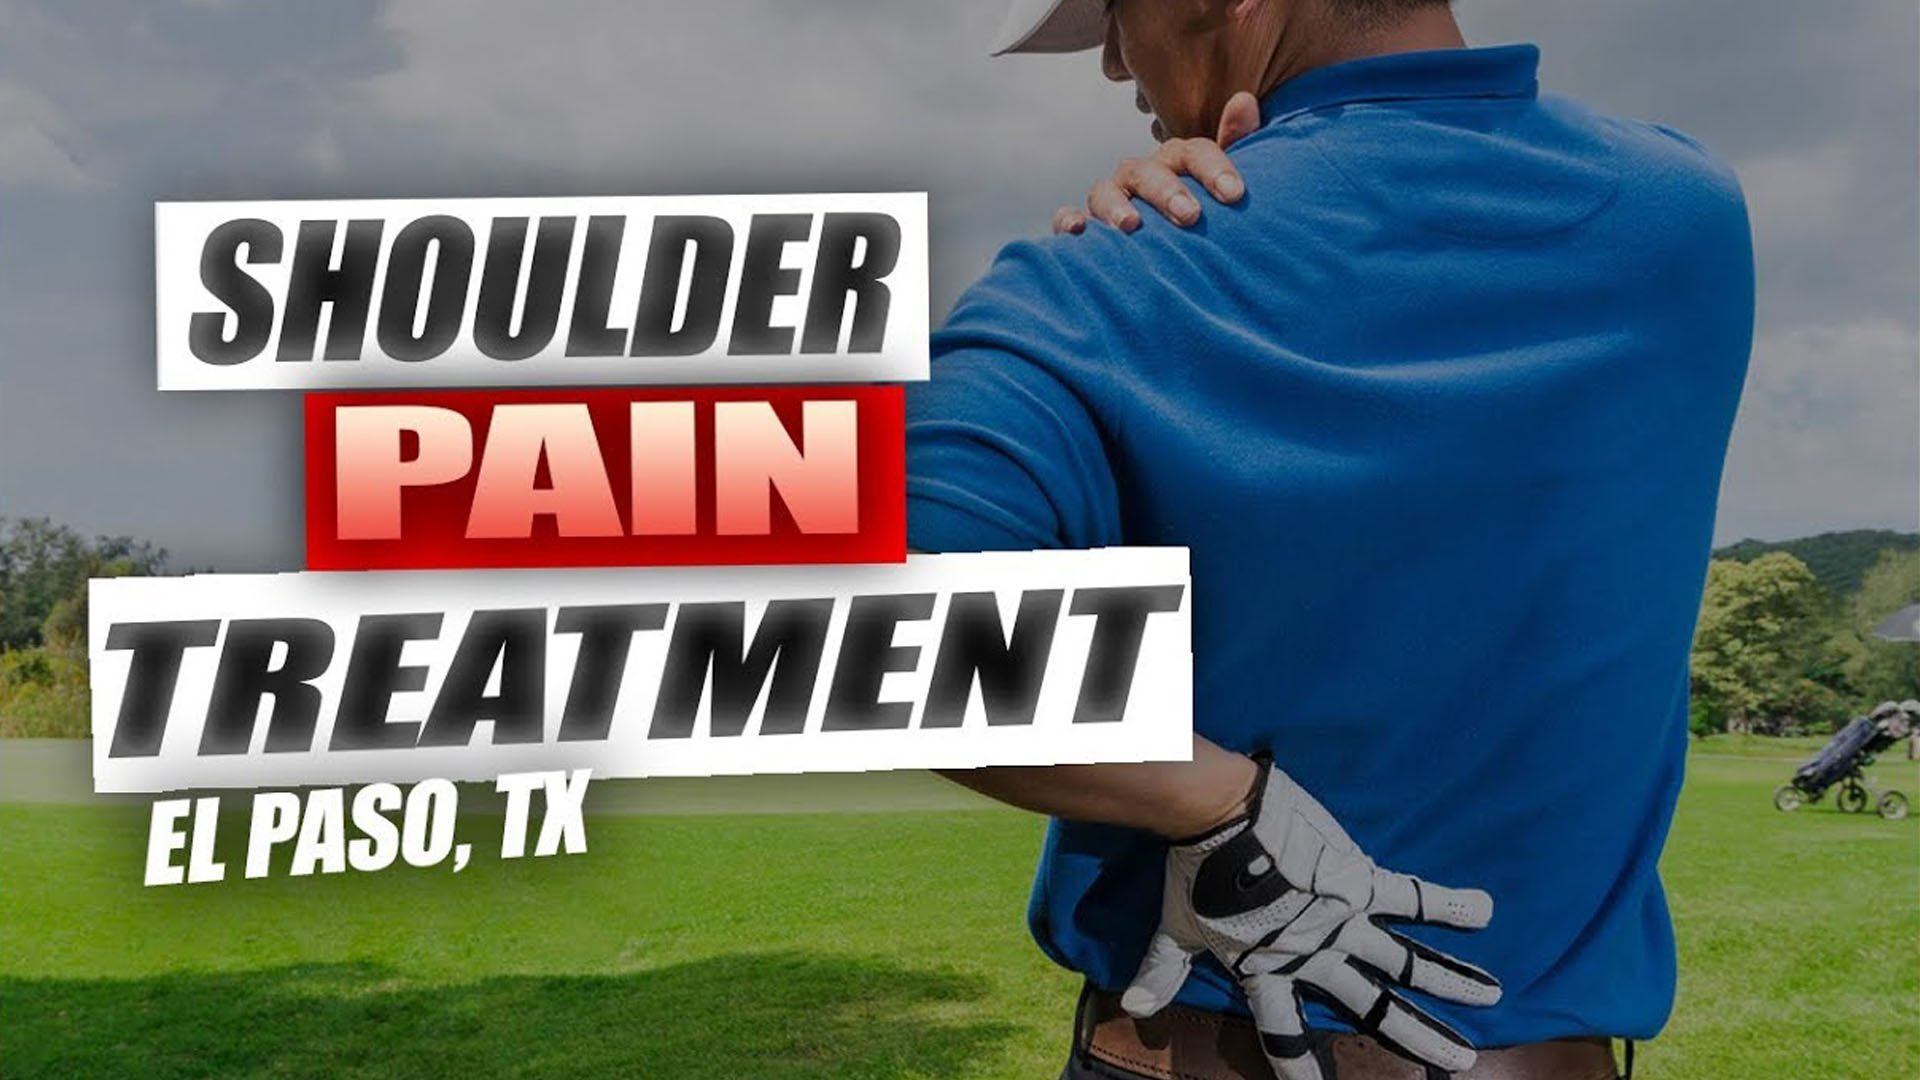 Shoulder Pain Treatment | Video | El Paso, TX.